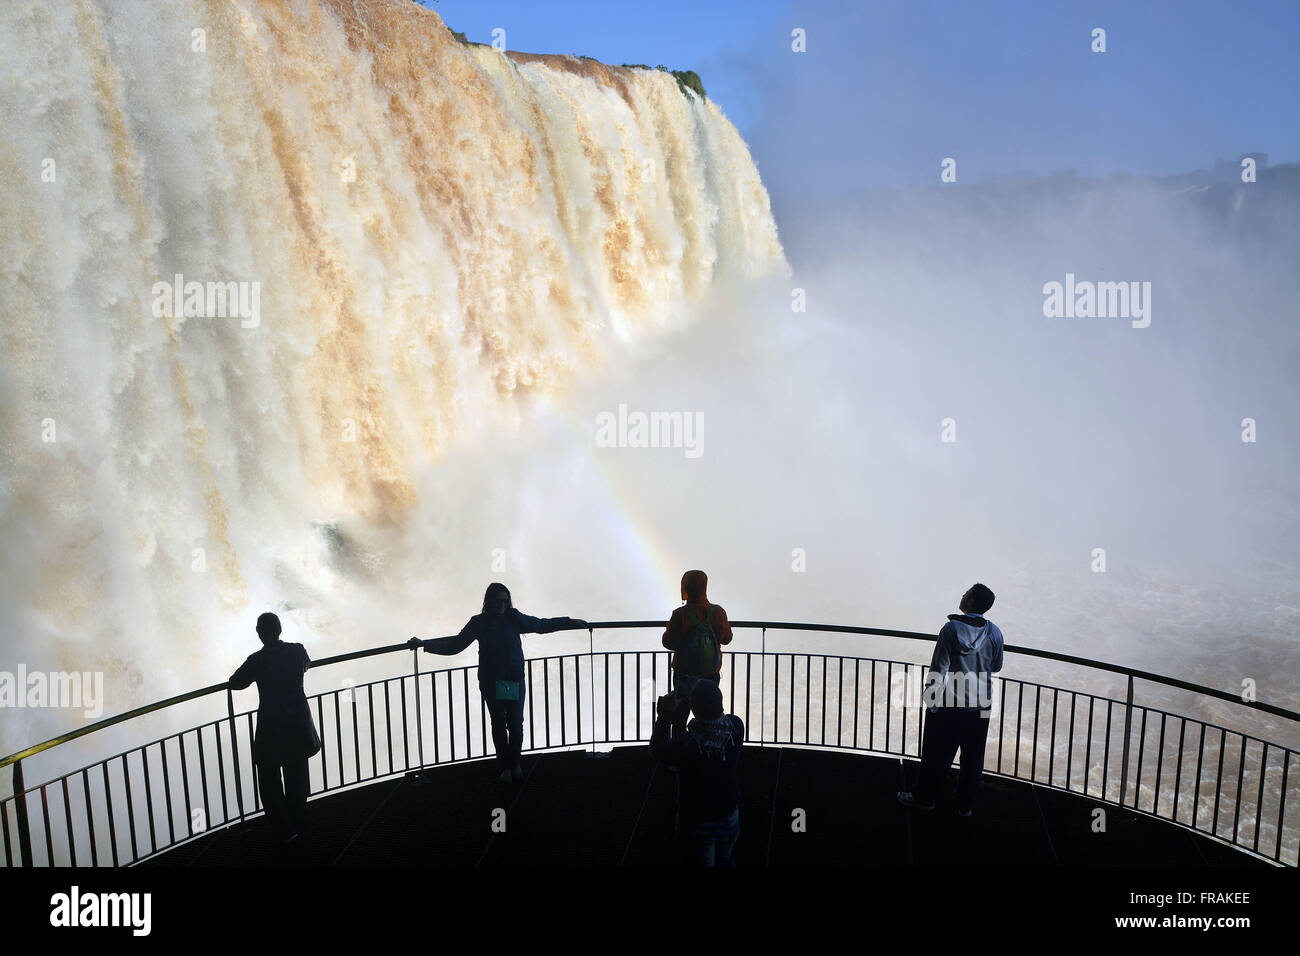 Tourists contemplating Cataratas do Iguacu - Iguacu National Park - Stock Image